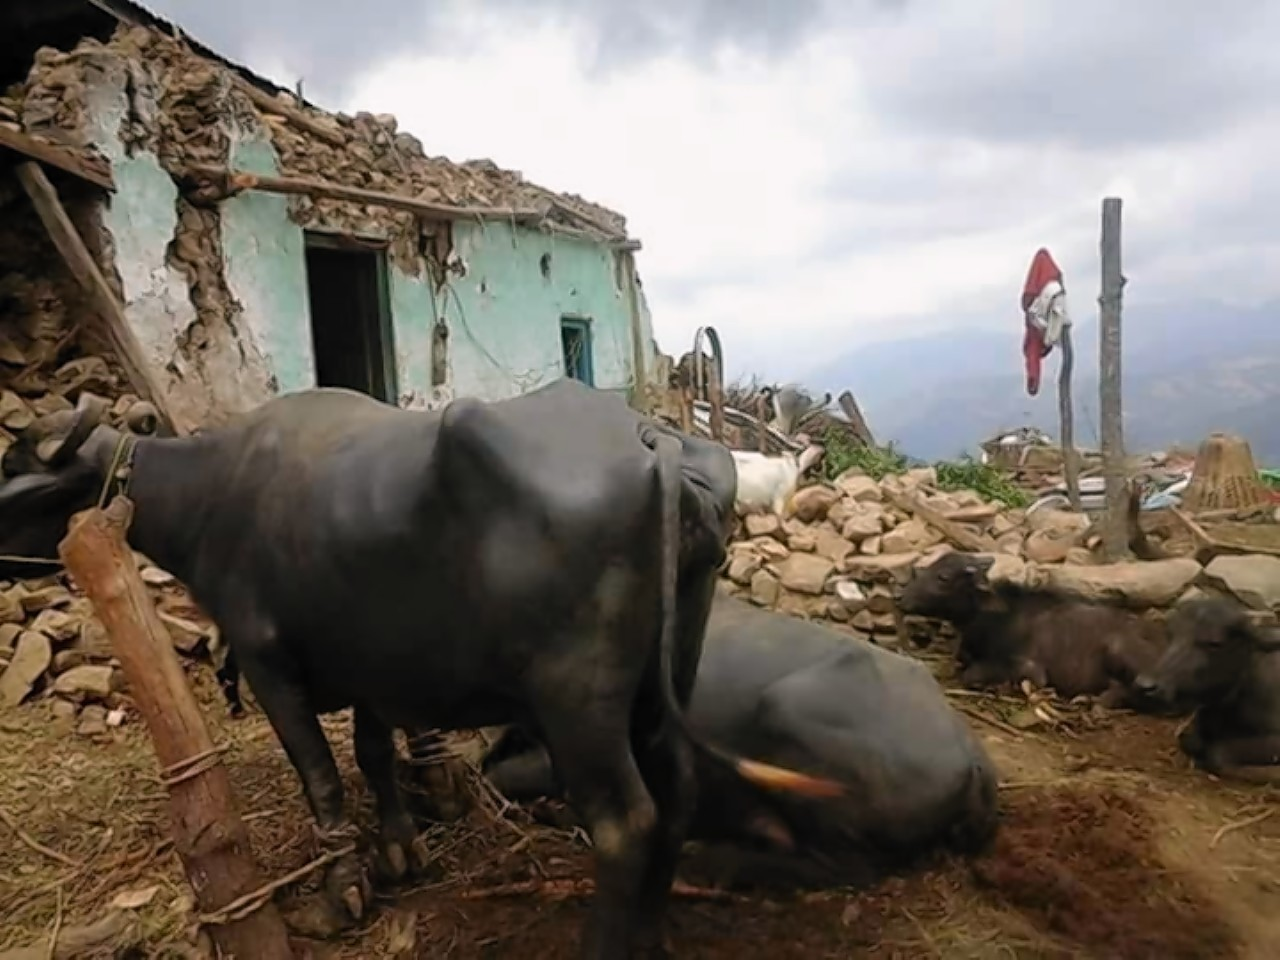 Nepalese farmers are struggling following last month's earthquake